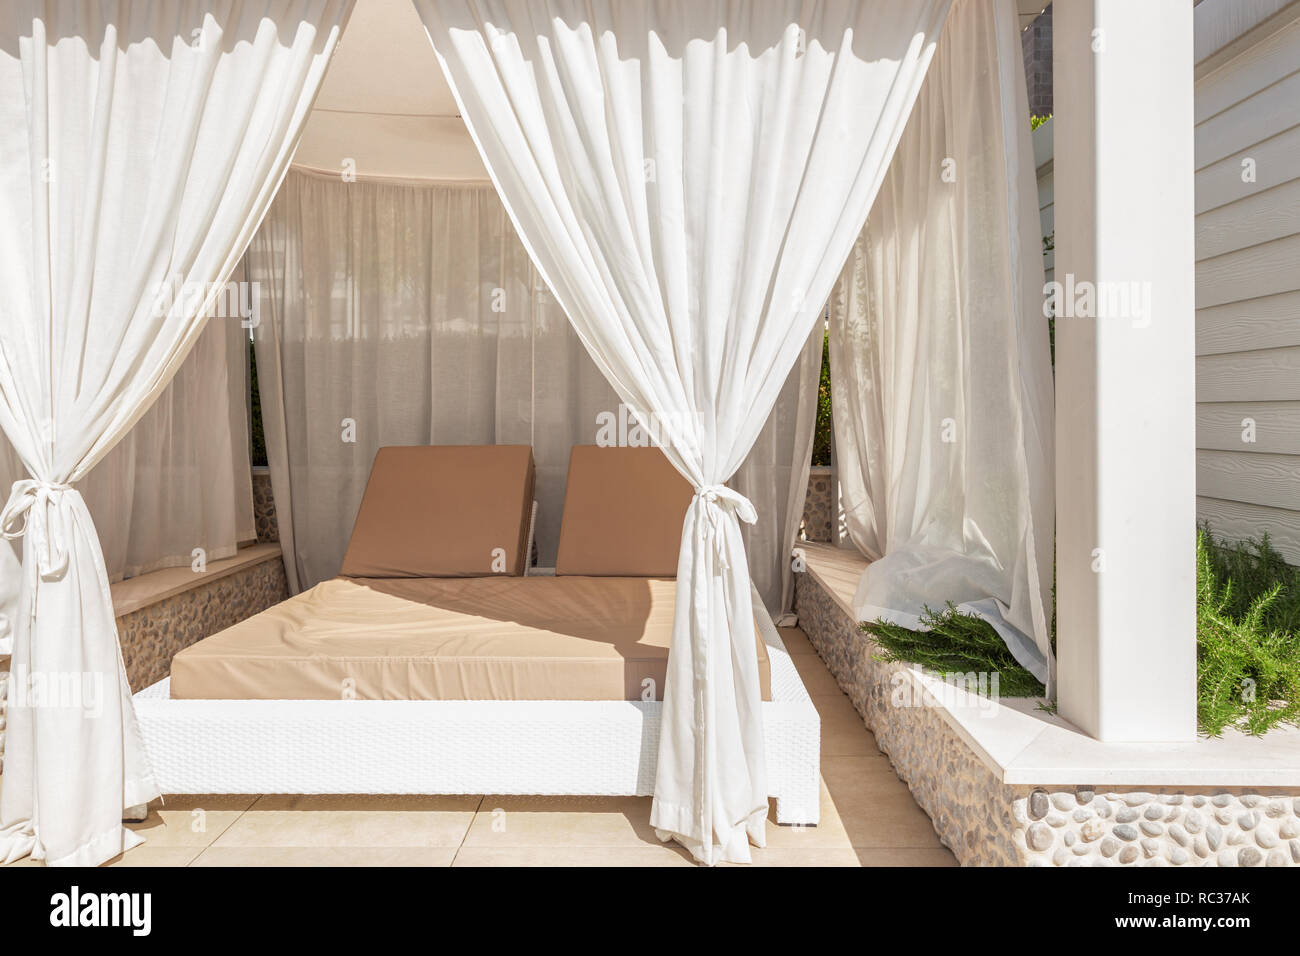 Sunbed lounge with curtain for luxury summer relaxation concept - Stock Image